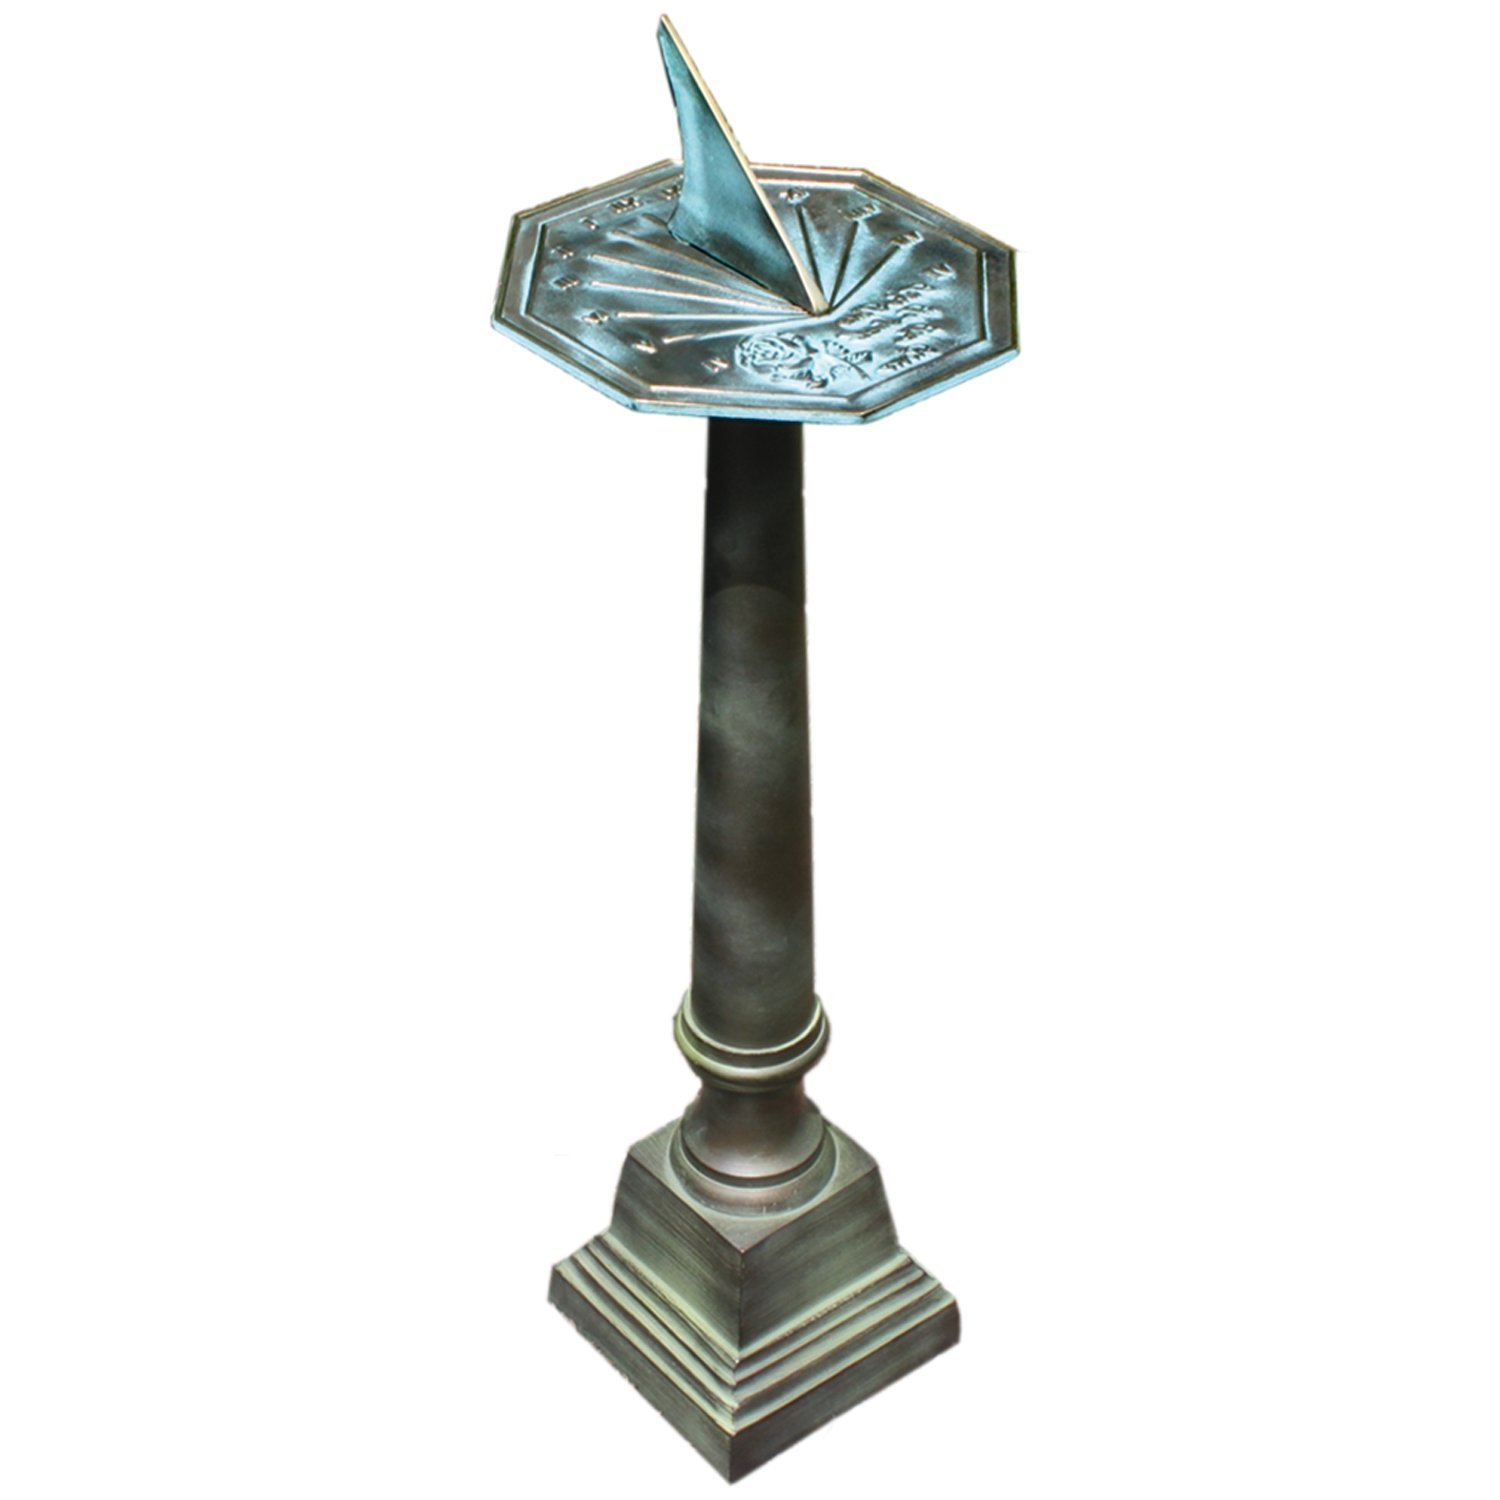 Rome B28 Aluminum Column Sundial Pedestal, Cast Aluminum with Copper and Light Verdigris Patina Finish, 25-Inch Height